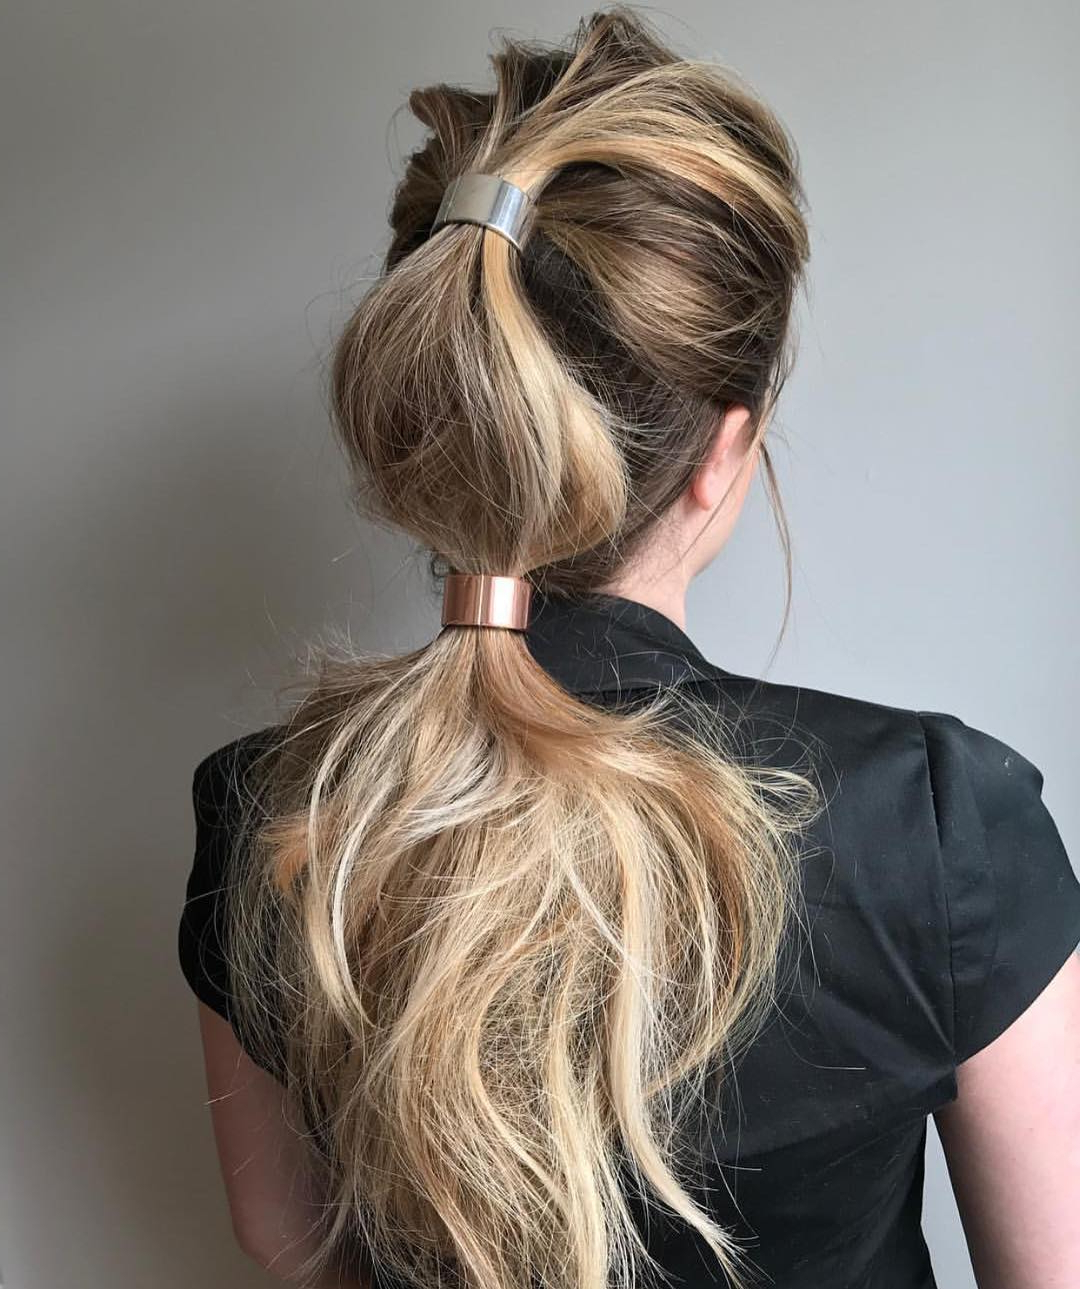 10 Trendiest Ponytail Hairstyles For Long Hair 2019 – Easy With Regard To Most Popular Ponytail Layered Long Hairstyles (View 3 of 20)